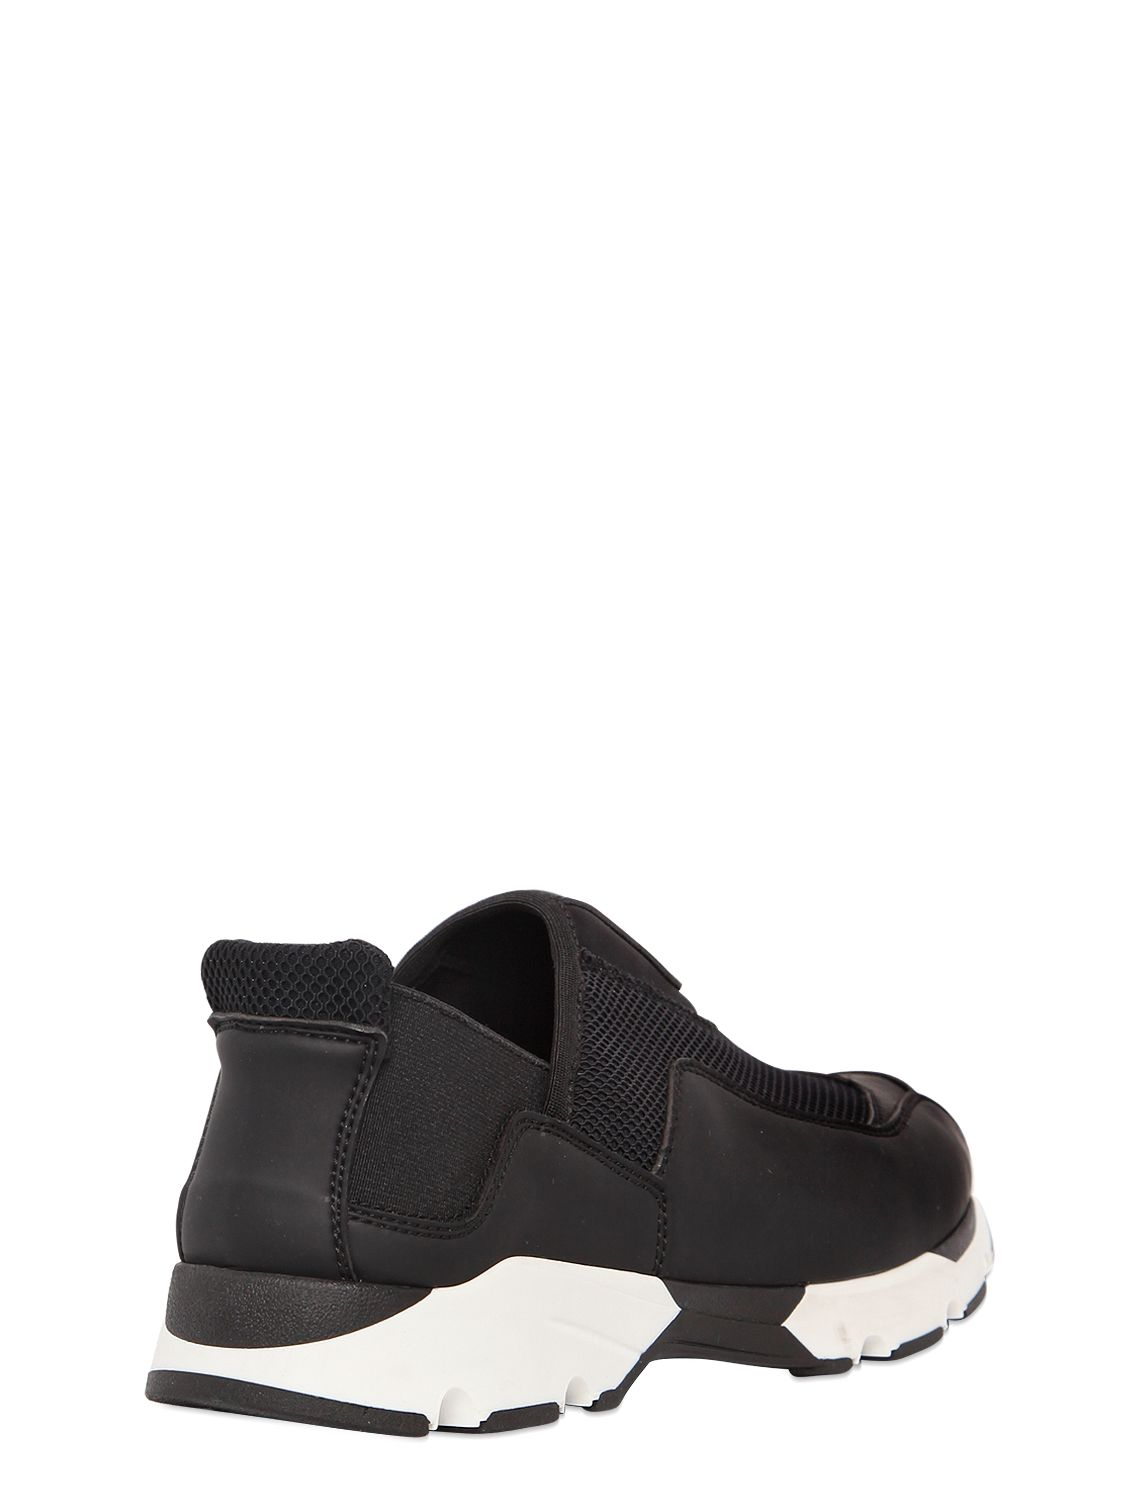 Marni Suede and mesh sneakers supply online outlet cheap authentic discount online sale 2015 new the best store to get i9LDC